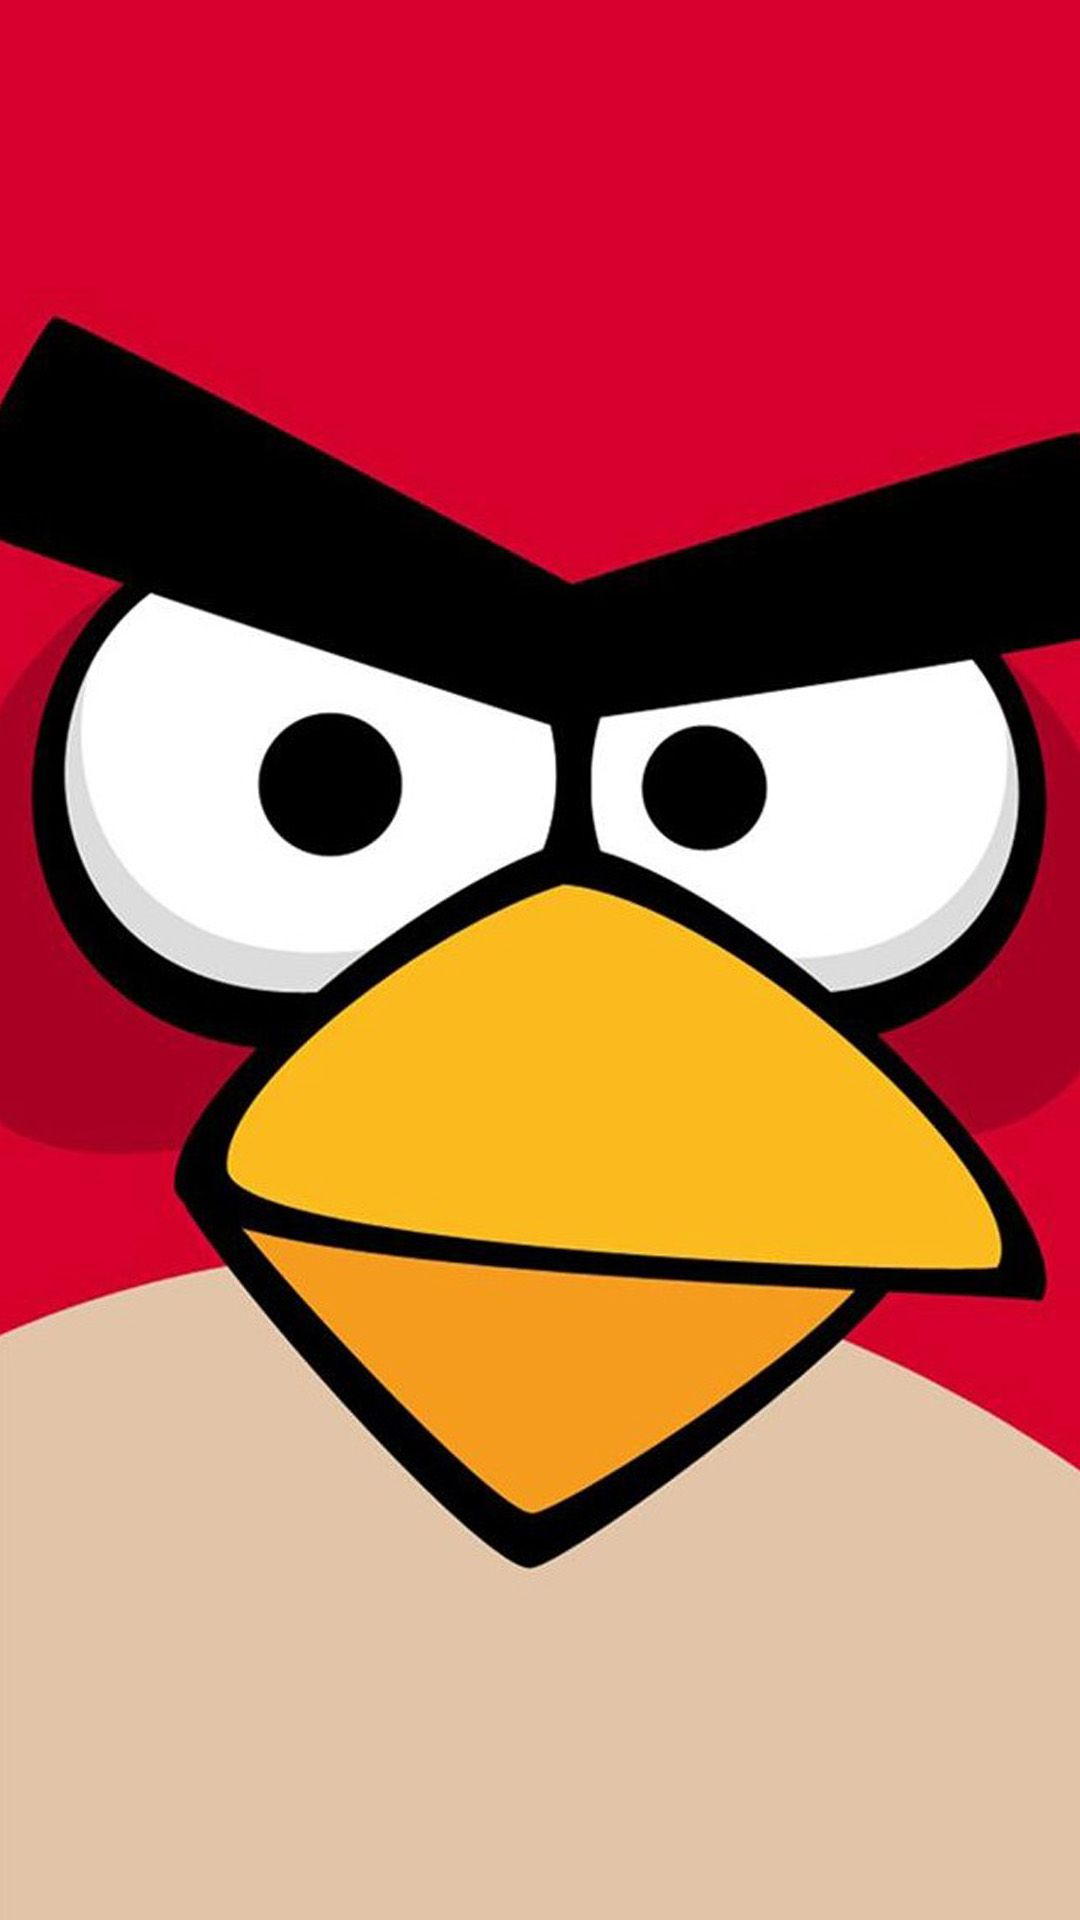 angry bird game background iphone 6 plus wallpaper